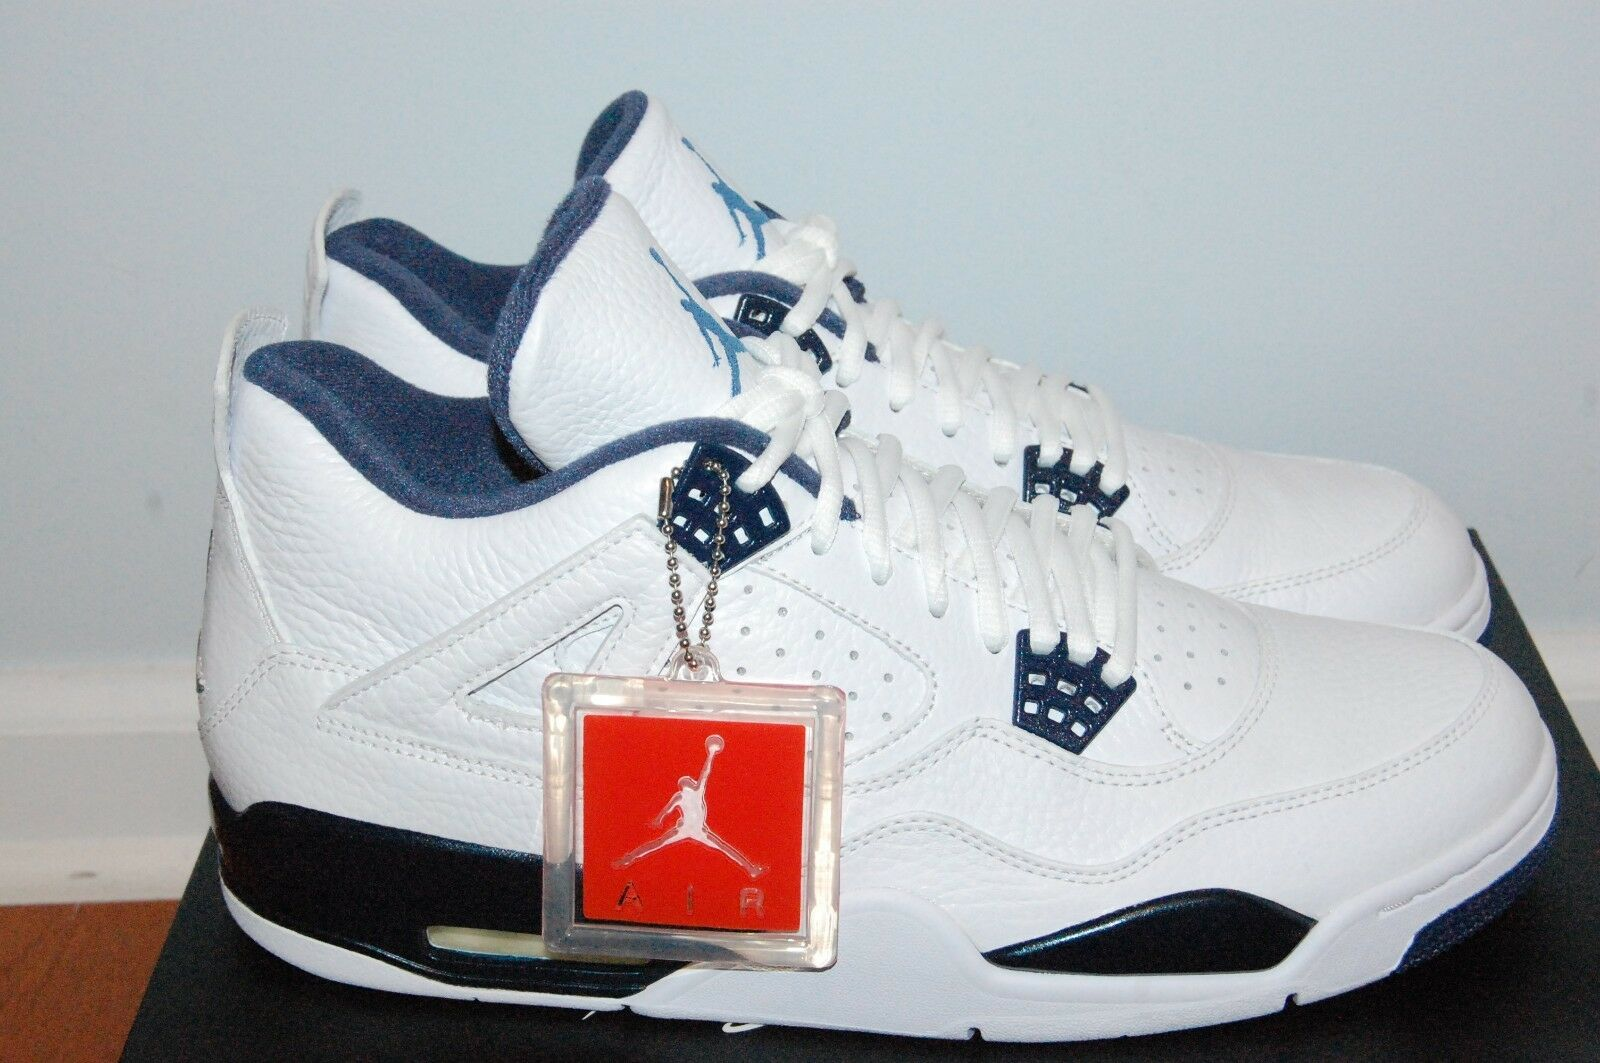 DS Nike Air Jordan Retro 4 Columbia Size 12 White bluee